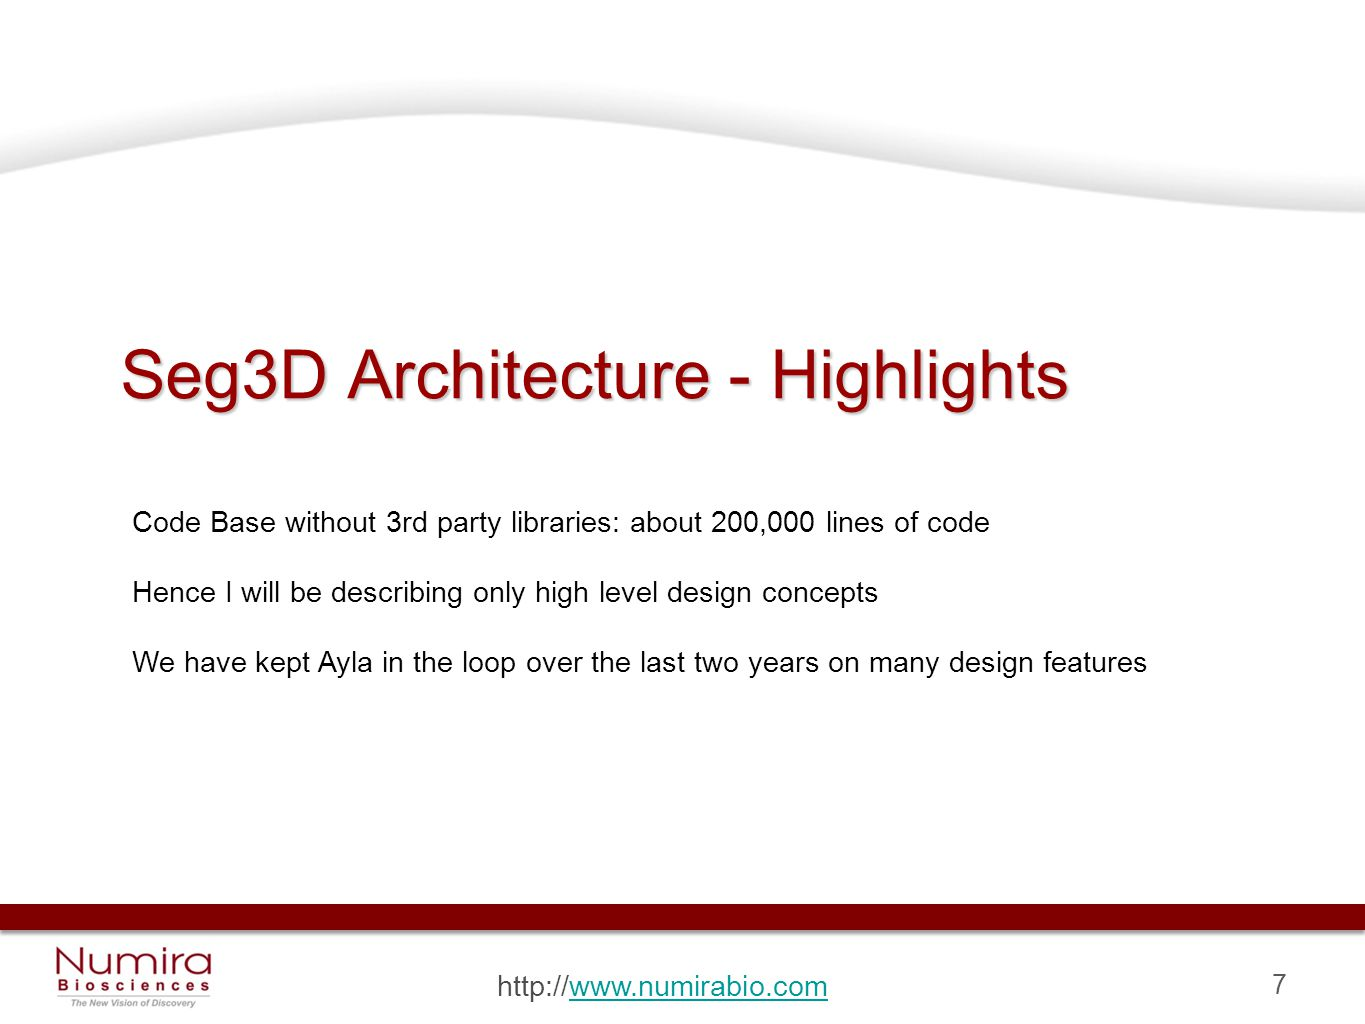 7 http://www.numirabio.comwww.numirabio.com Seg3D Architecture - Highlights Code Base without 3rd party libraries: about 200,000 lines of code Hence I will be describing only high level design concepts We have kept Ayla in the loop over the last two years on many design features